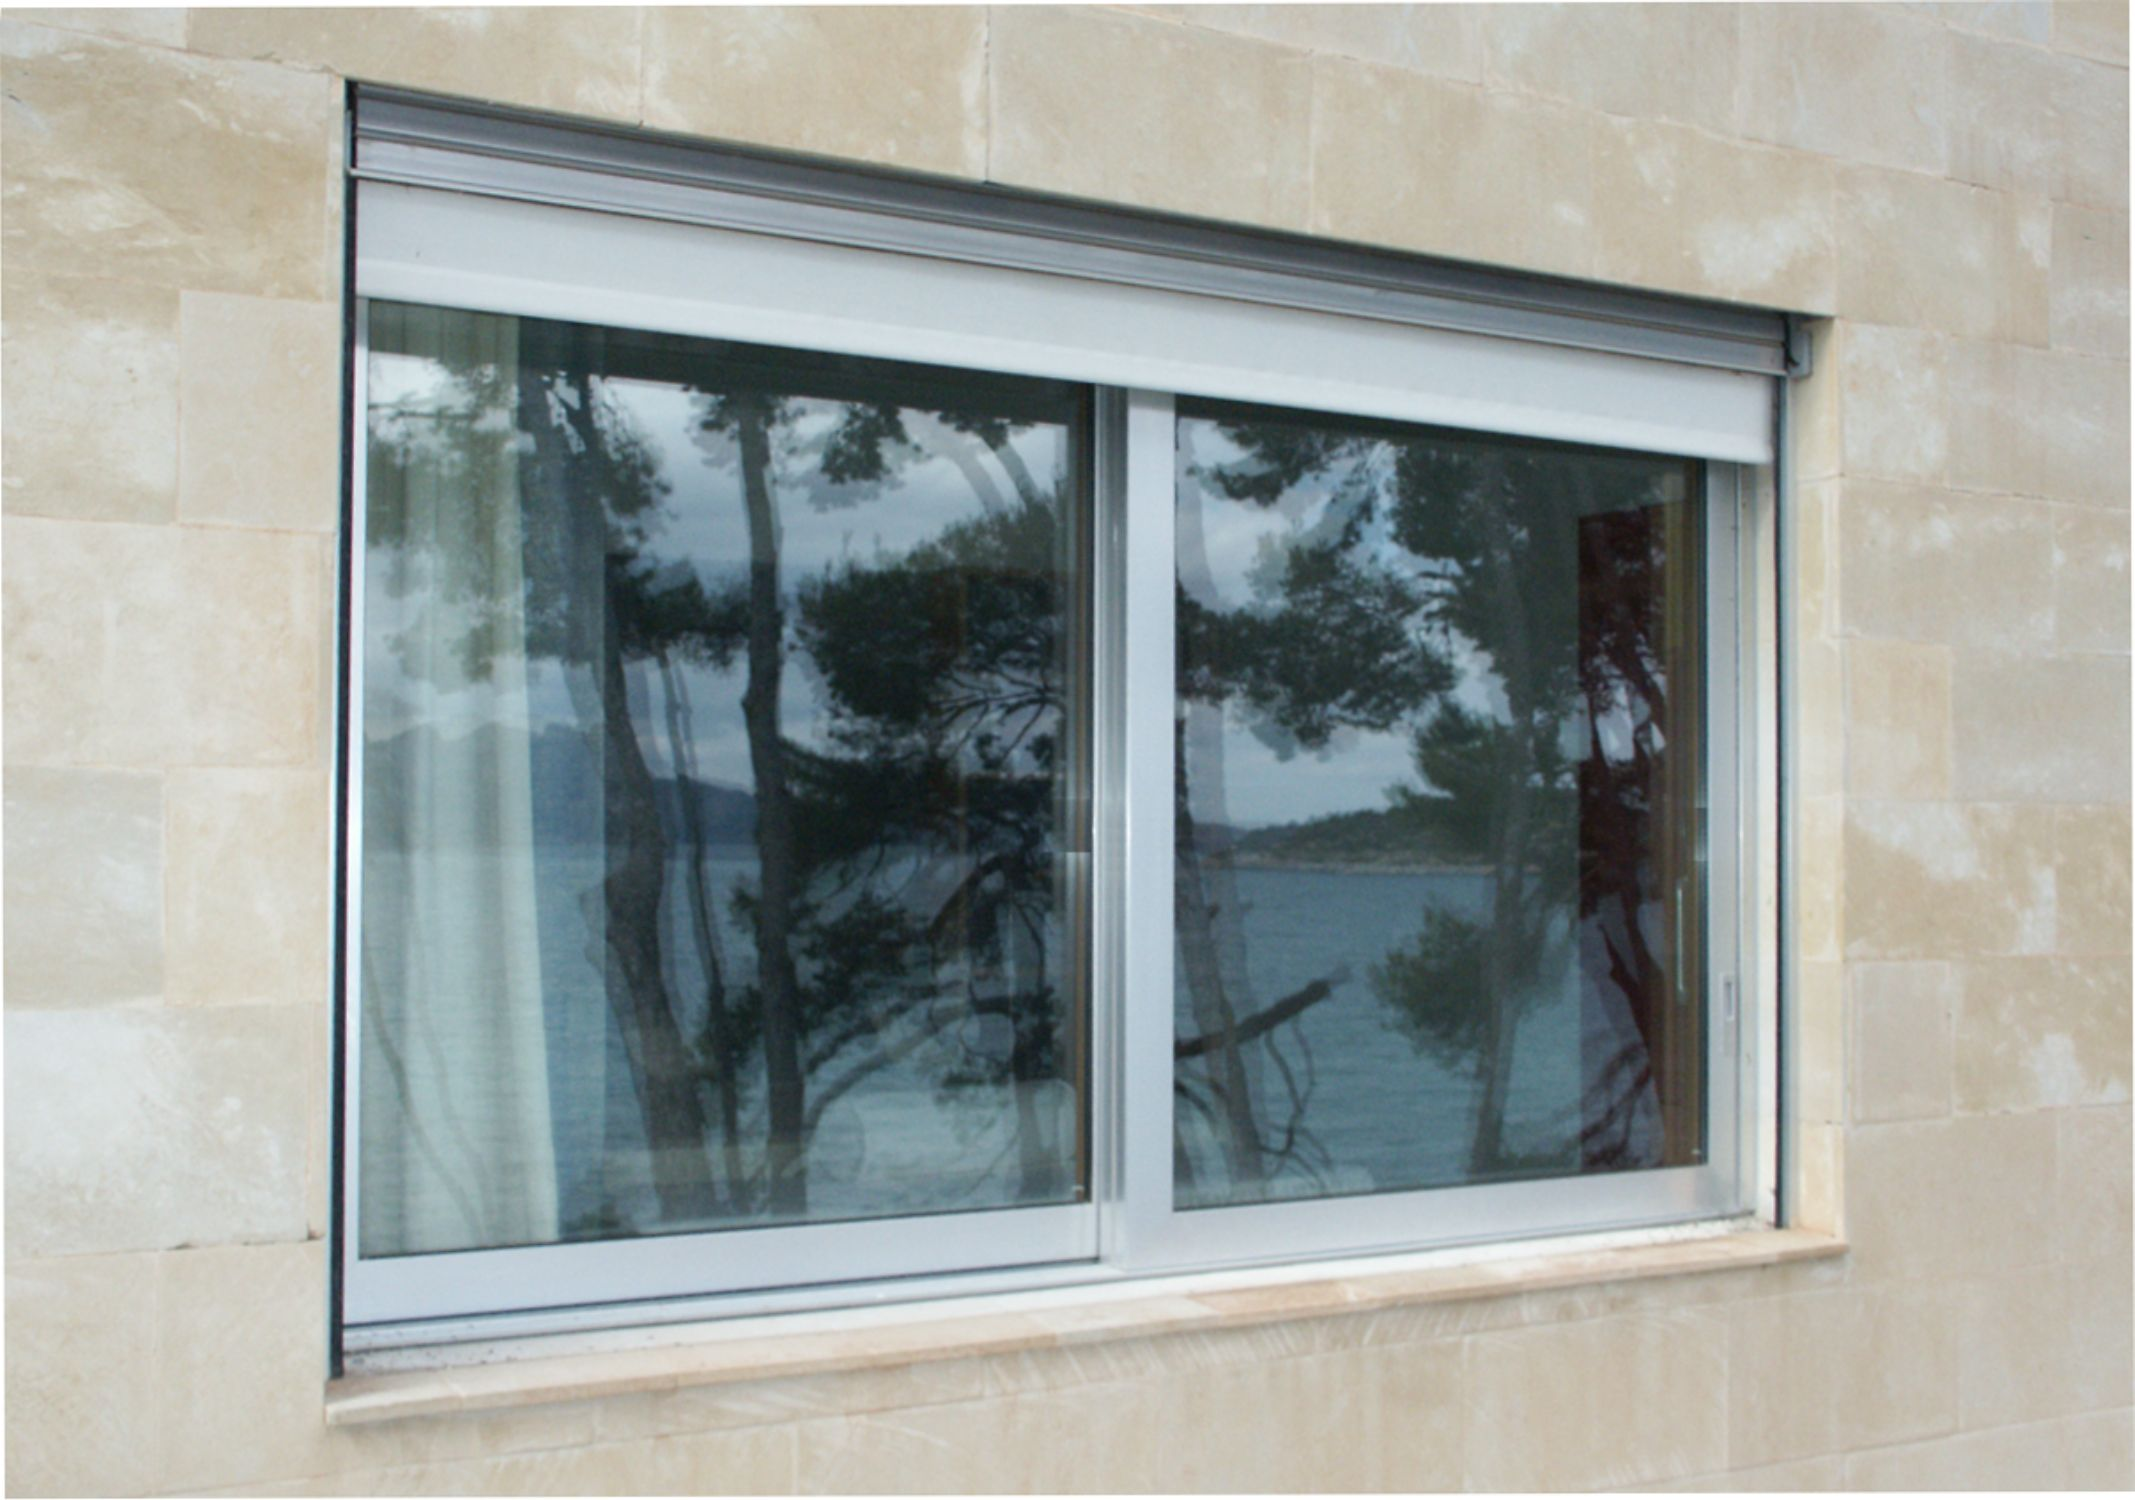 Persianas enrollables de aluminio exterior persiana enrollable pvc para exterior desde m with - Persianas enrollables exterior ...